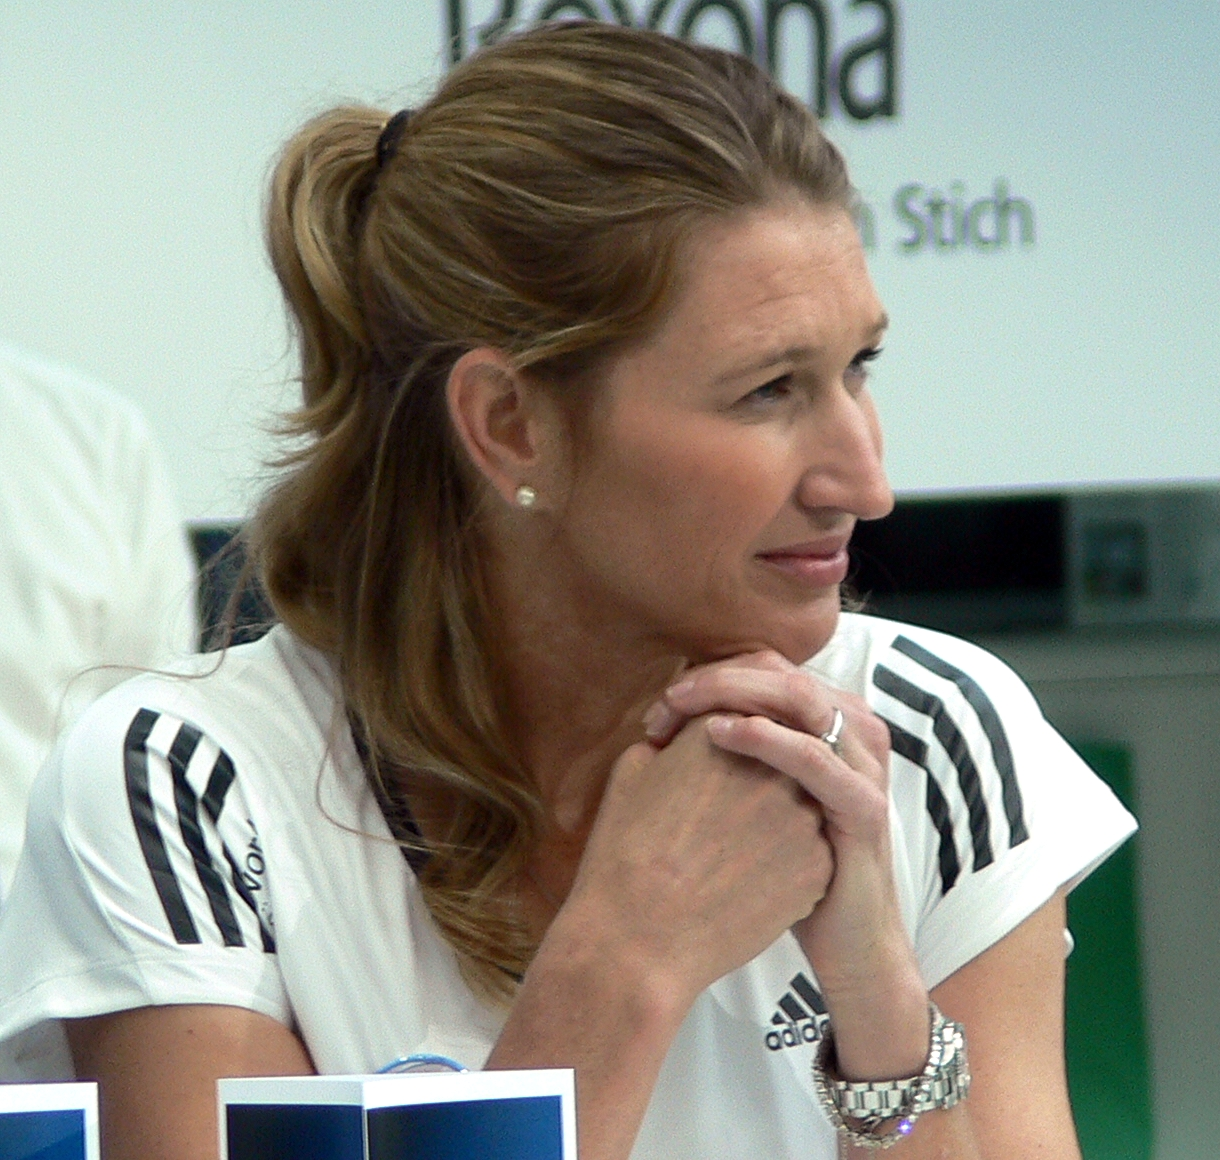 Images Steffi Graf Complete historic moments gems of youtube - legend of women tennis steffi